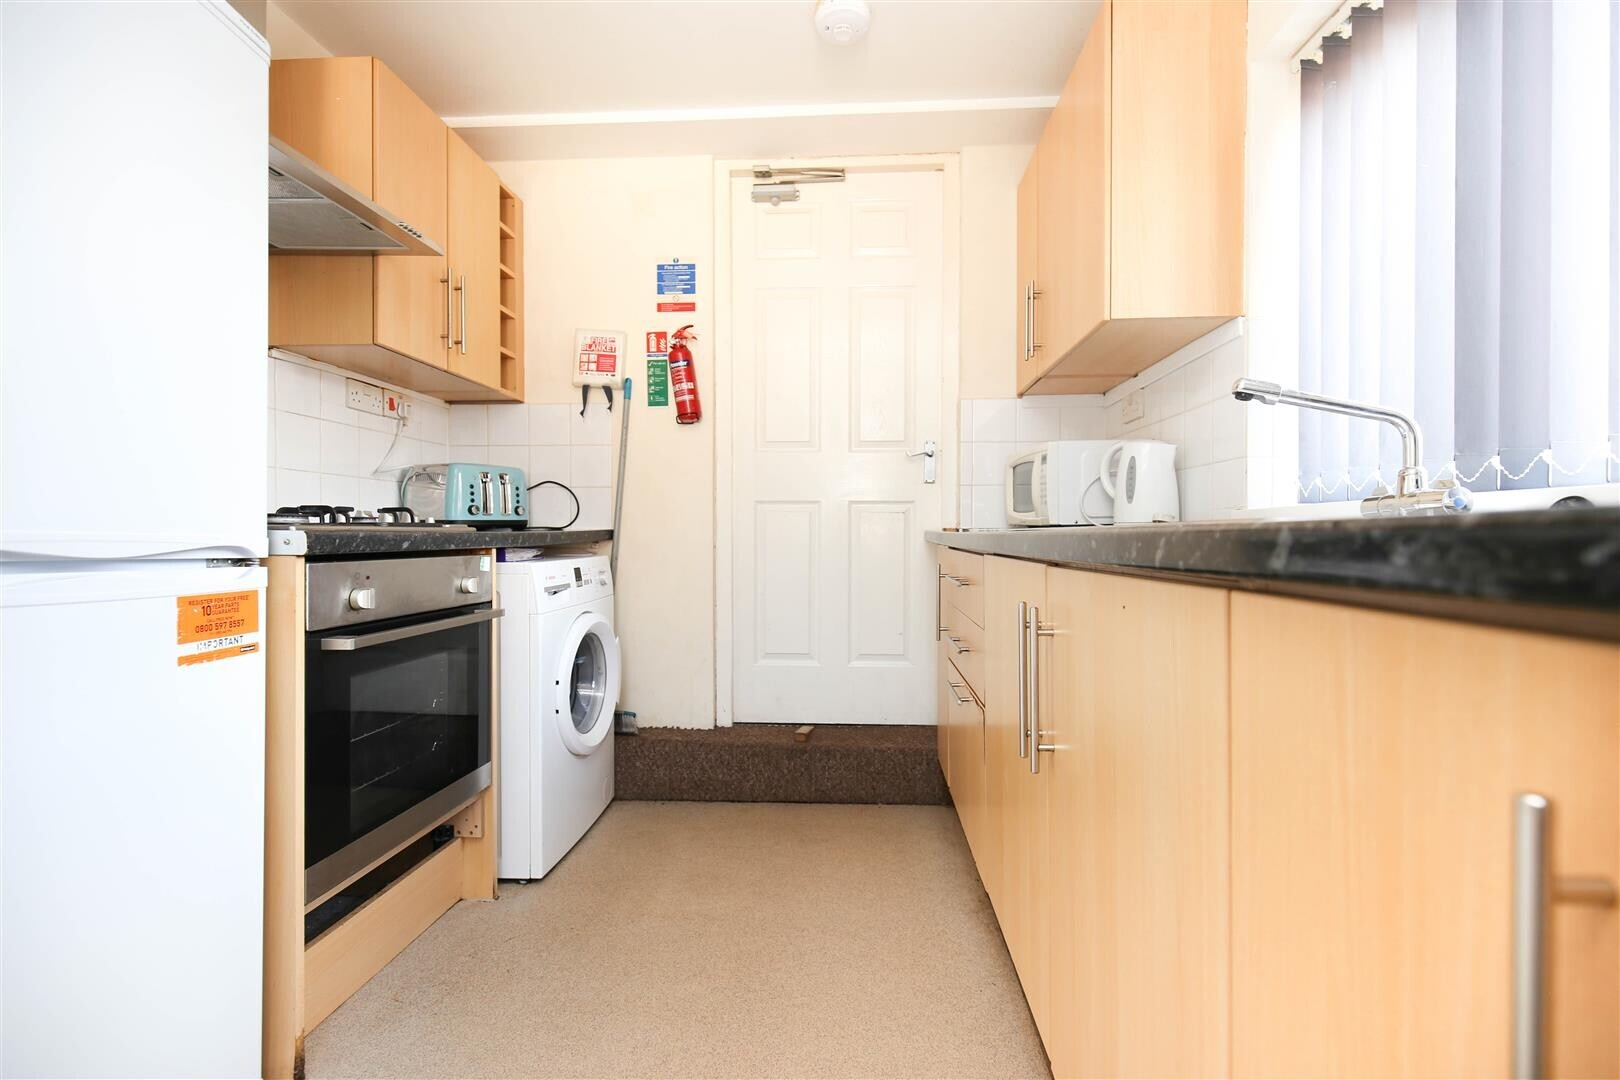 6 bedroom student house in Jesmond, Newcastle